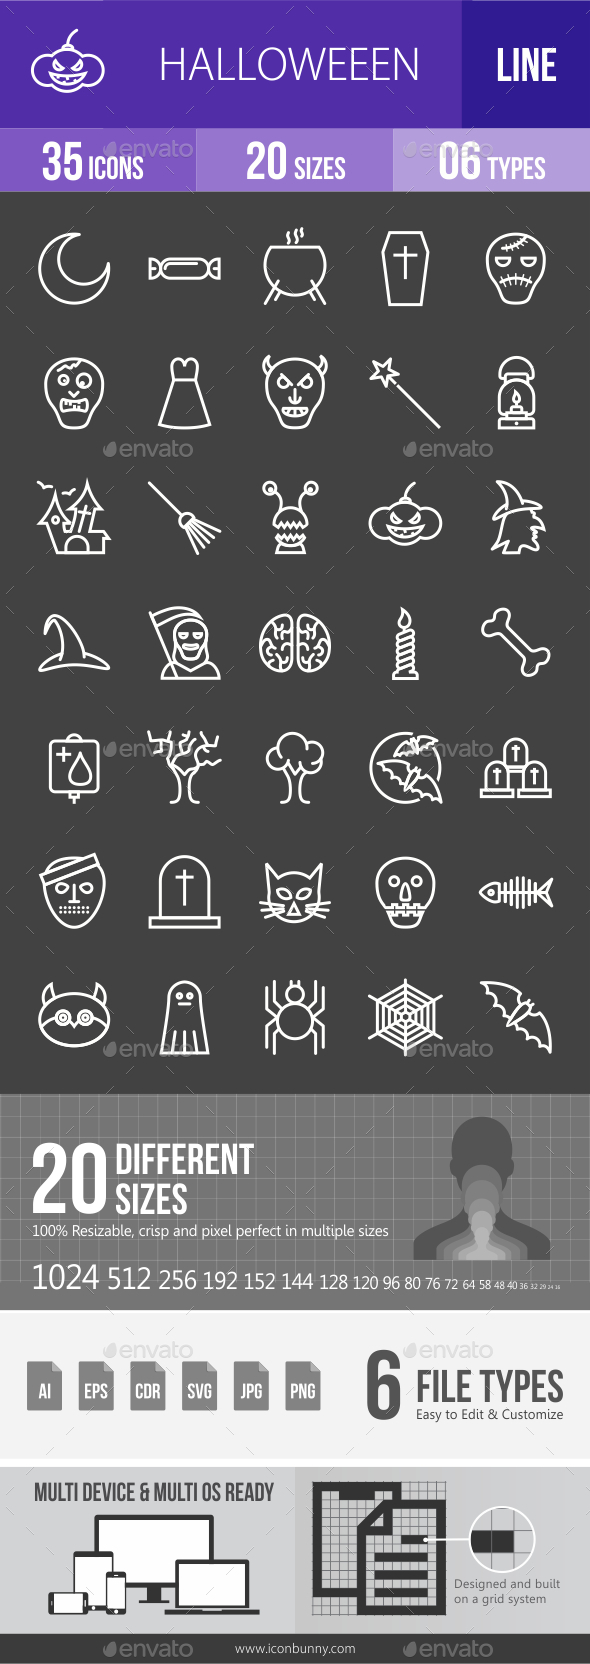 Halloween Line Inverted Icons